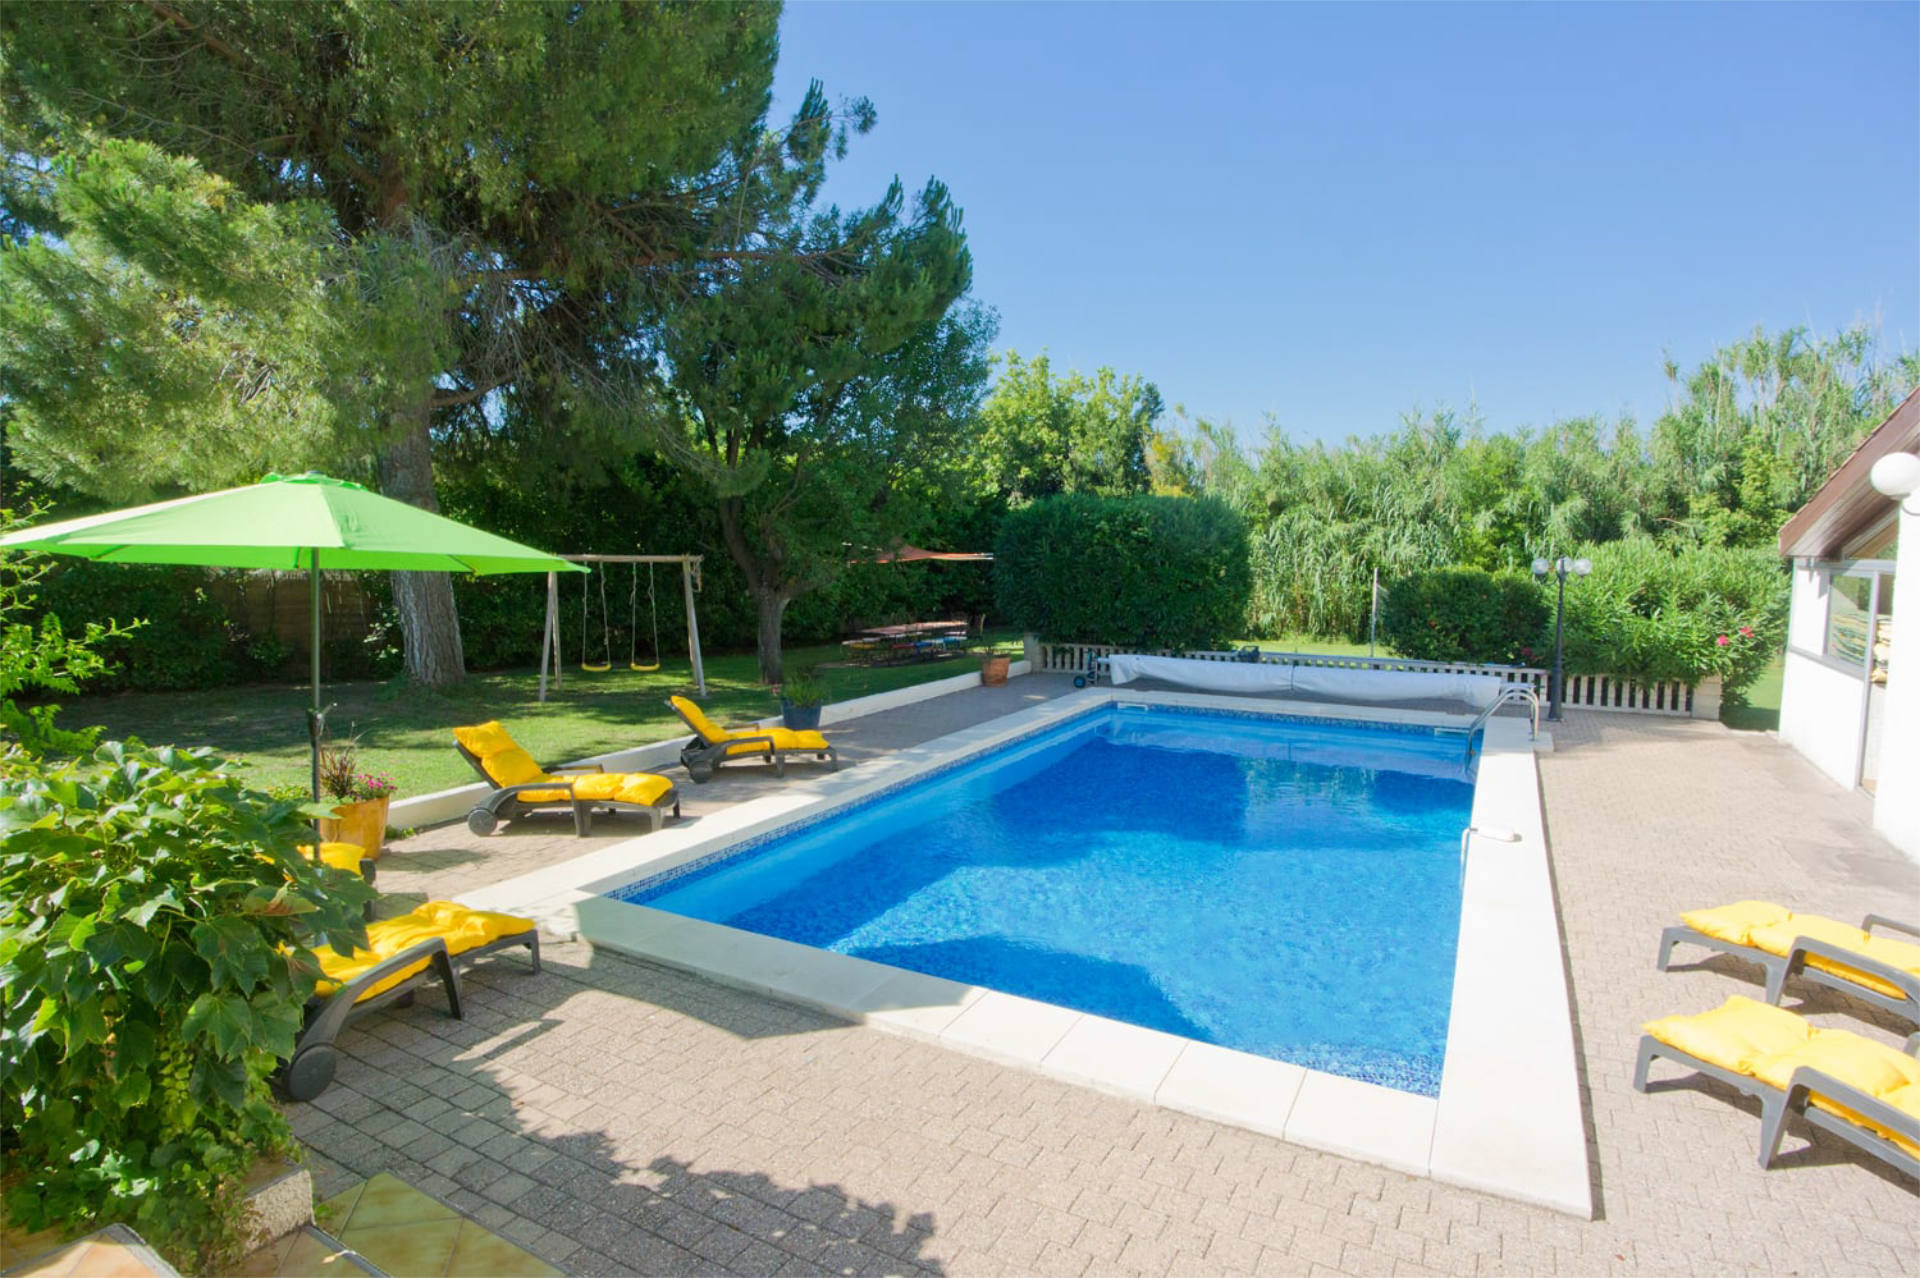 Les Ecureuils holiday home offering an outdoor heated swimming pool.